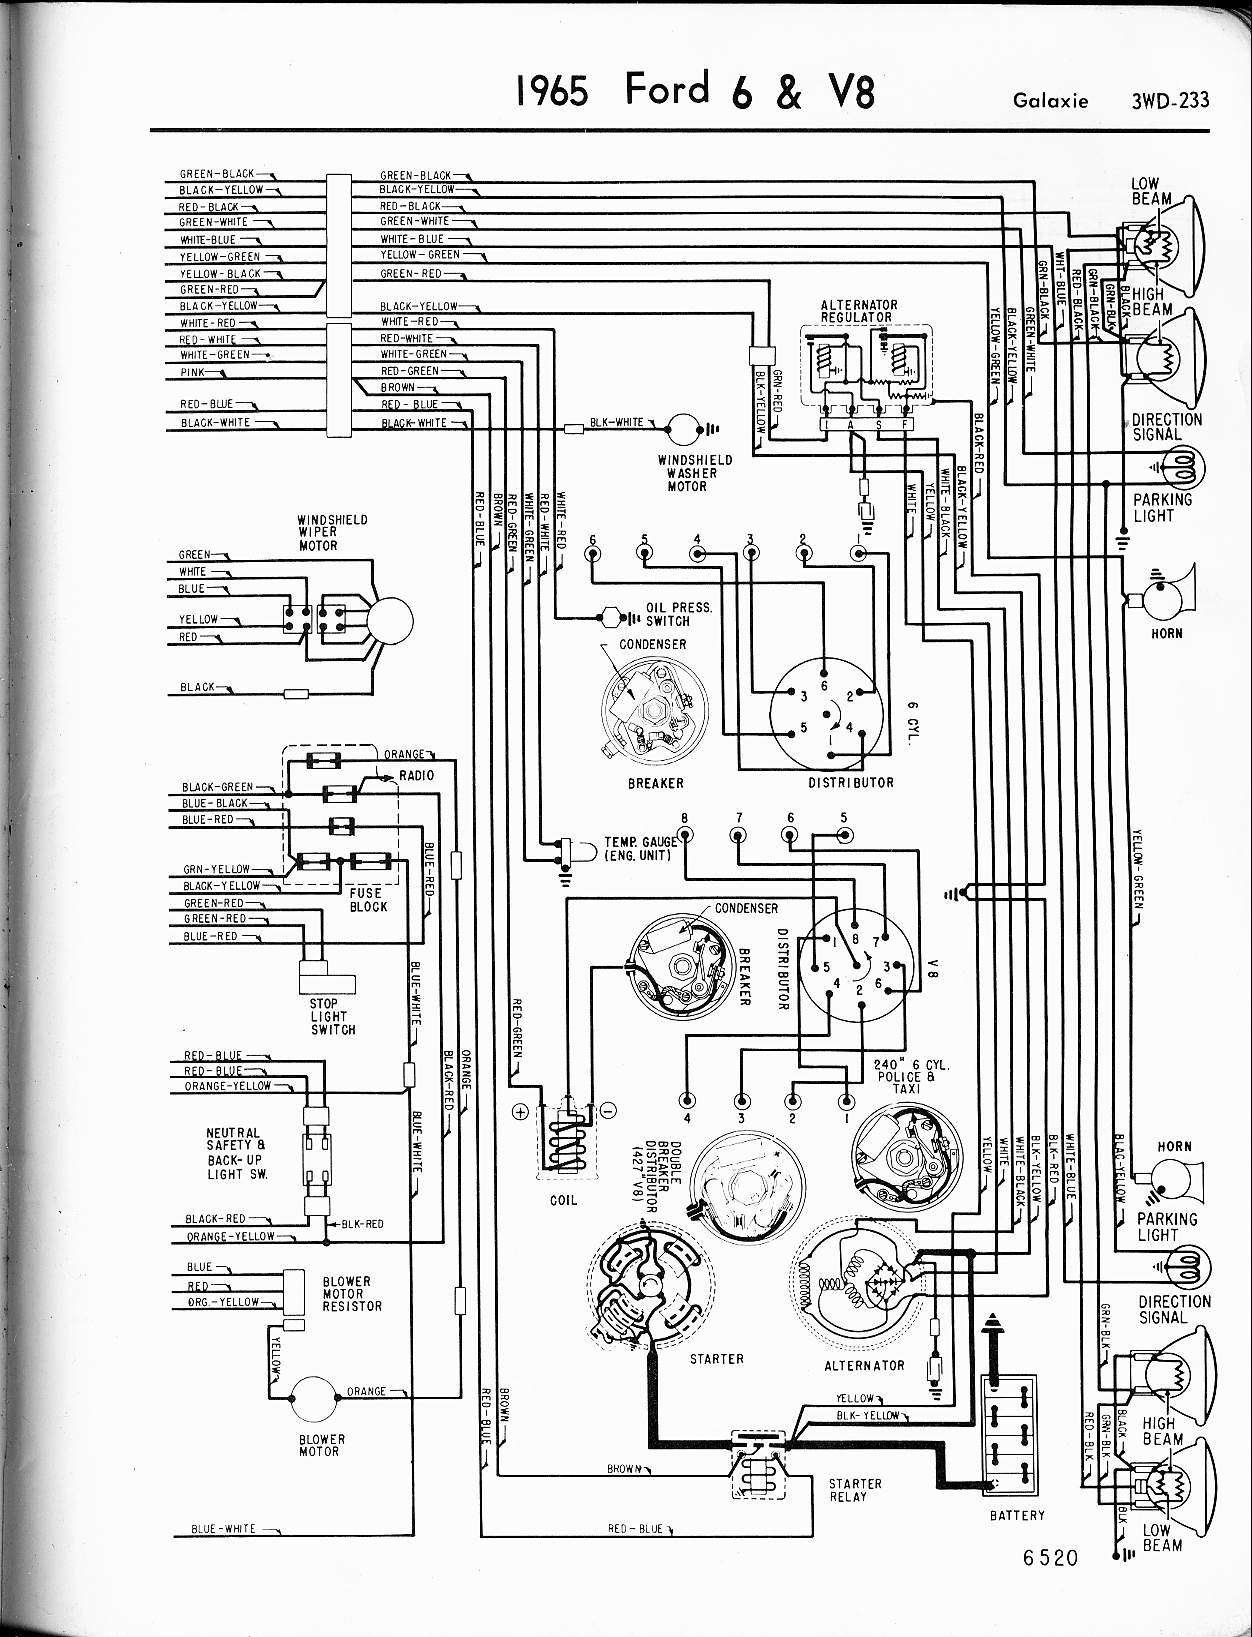 Strange 64 Cj5 Wiring Diagram Wiring Diagram Database Wiring Cloud Hisonuggs Outletorg